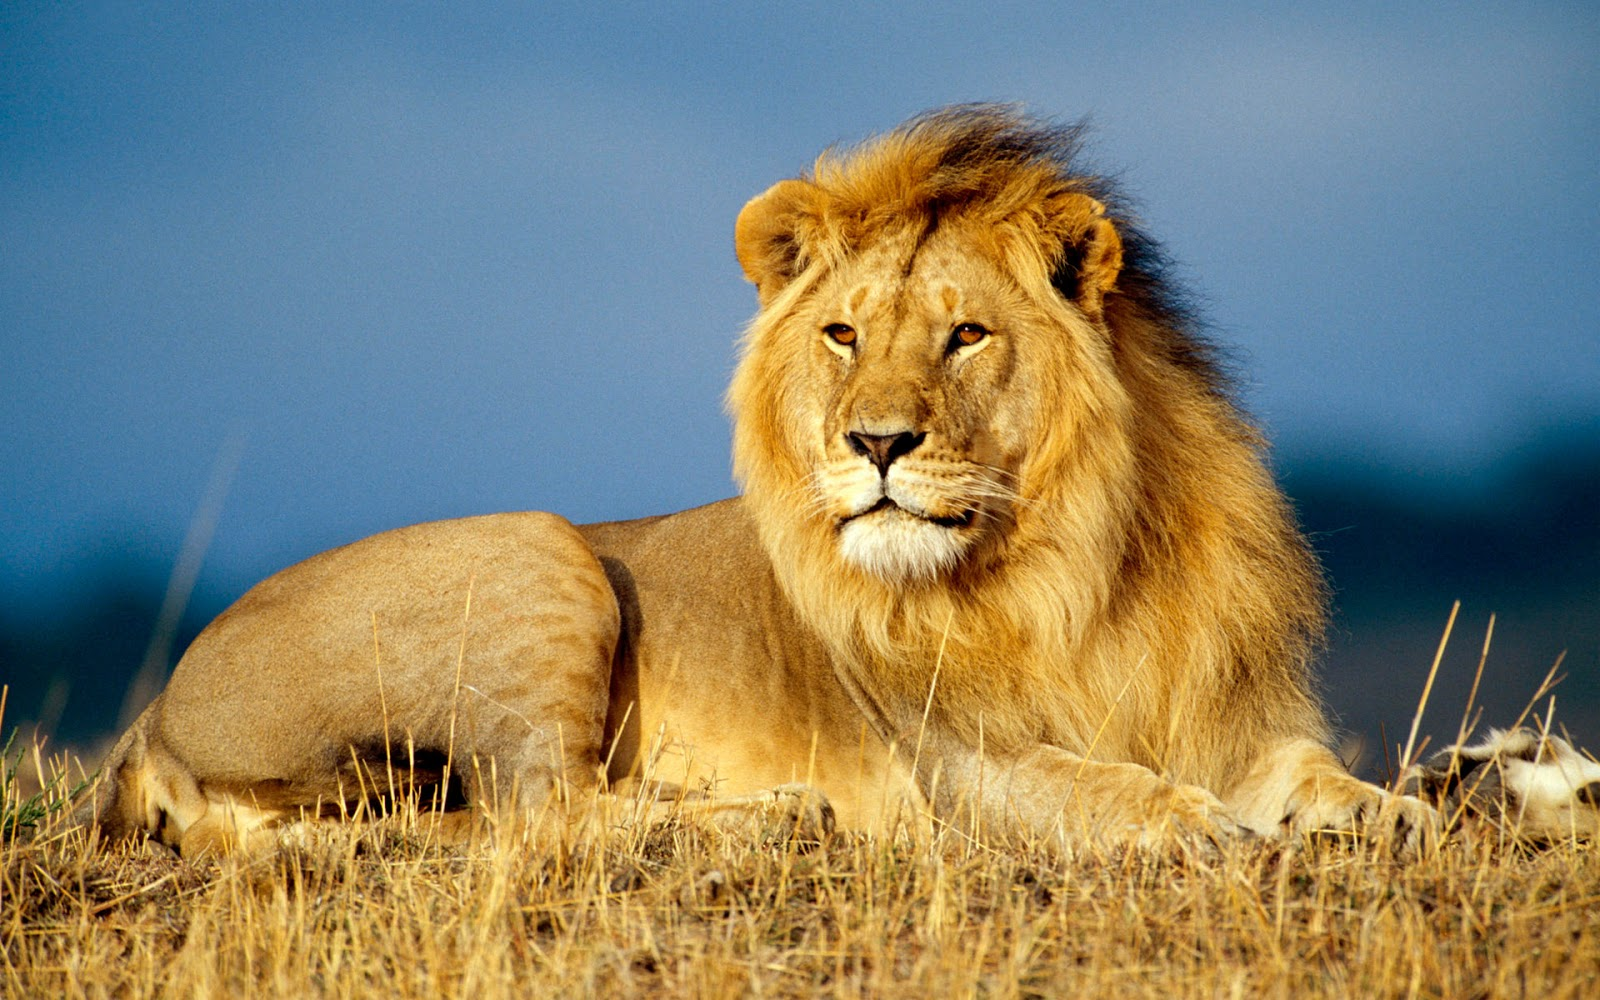 King Lion Sitting in Grass